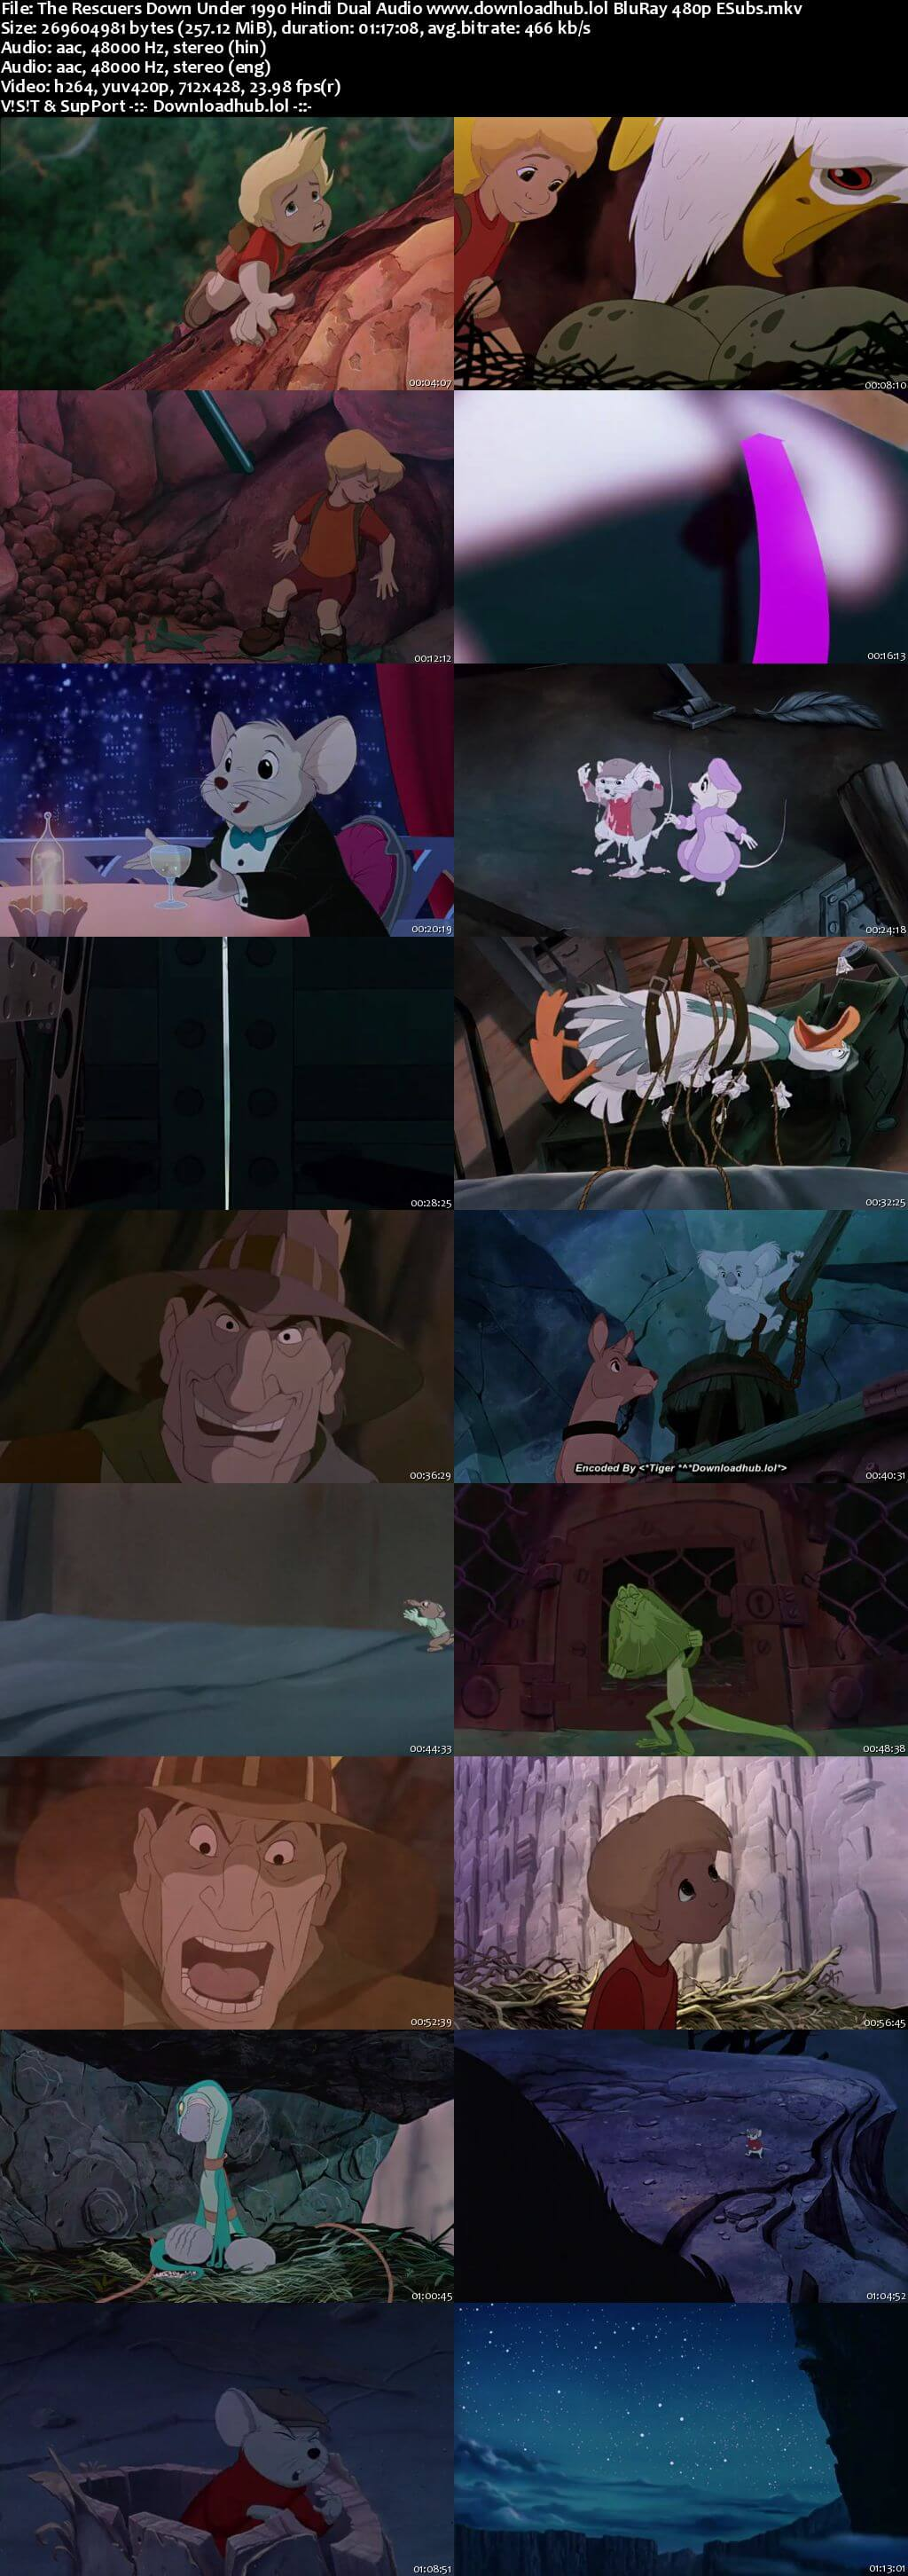 The Rescuers Down Under 1990 Hindi Dual Audio 250MB BluRay 480p ESubs